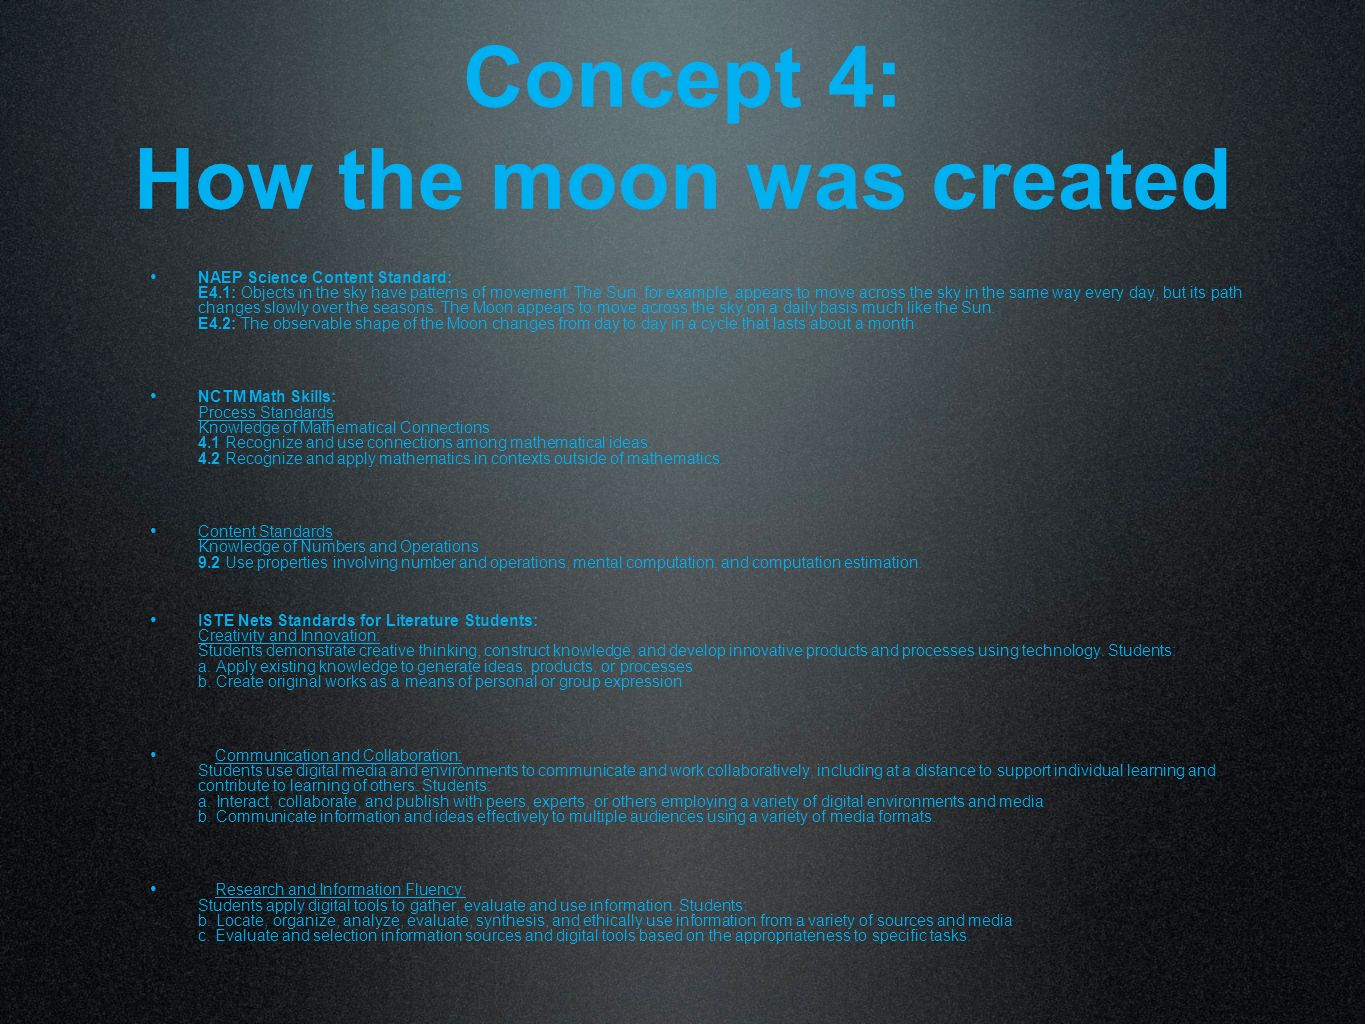 Concept 4: How the moon was created